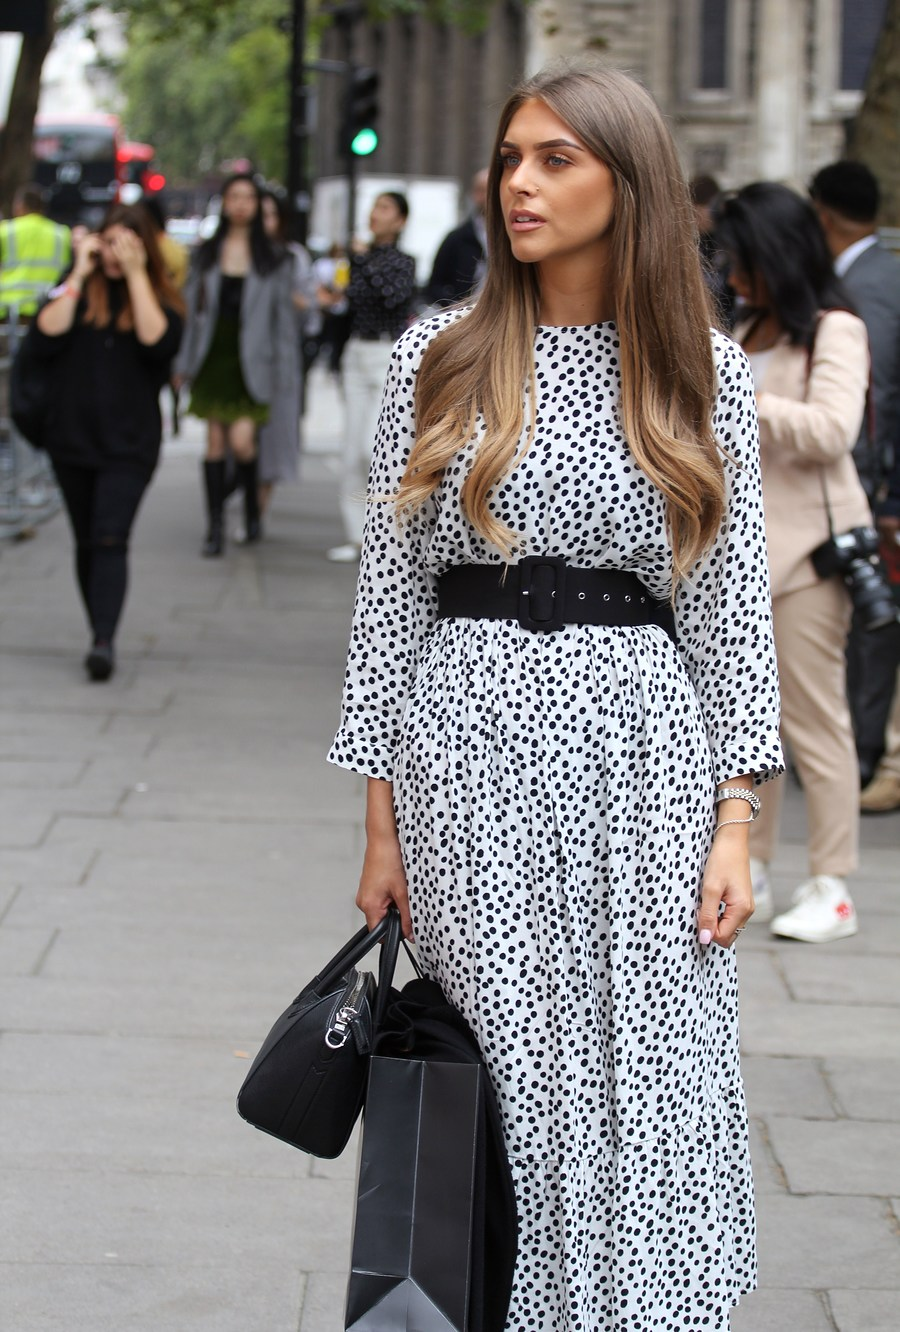 London Fashion Week (Sep) 2019 / Photography by DaveinSurrey / Uploaded 21st September 2019 @ 06:31 PM